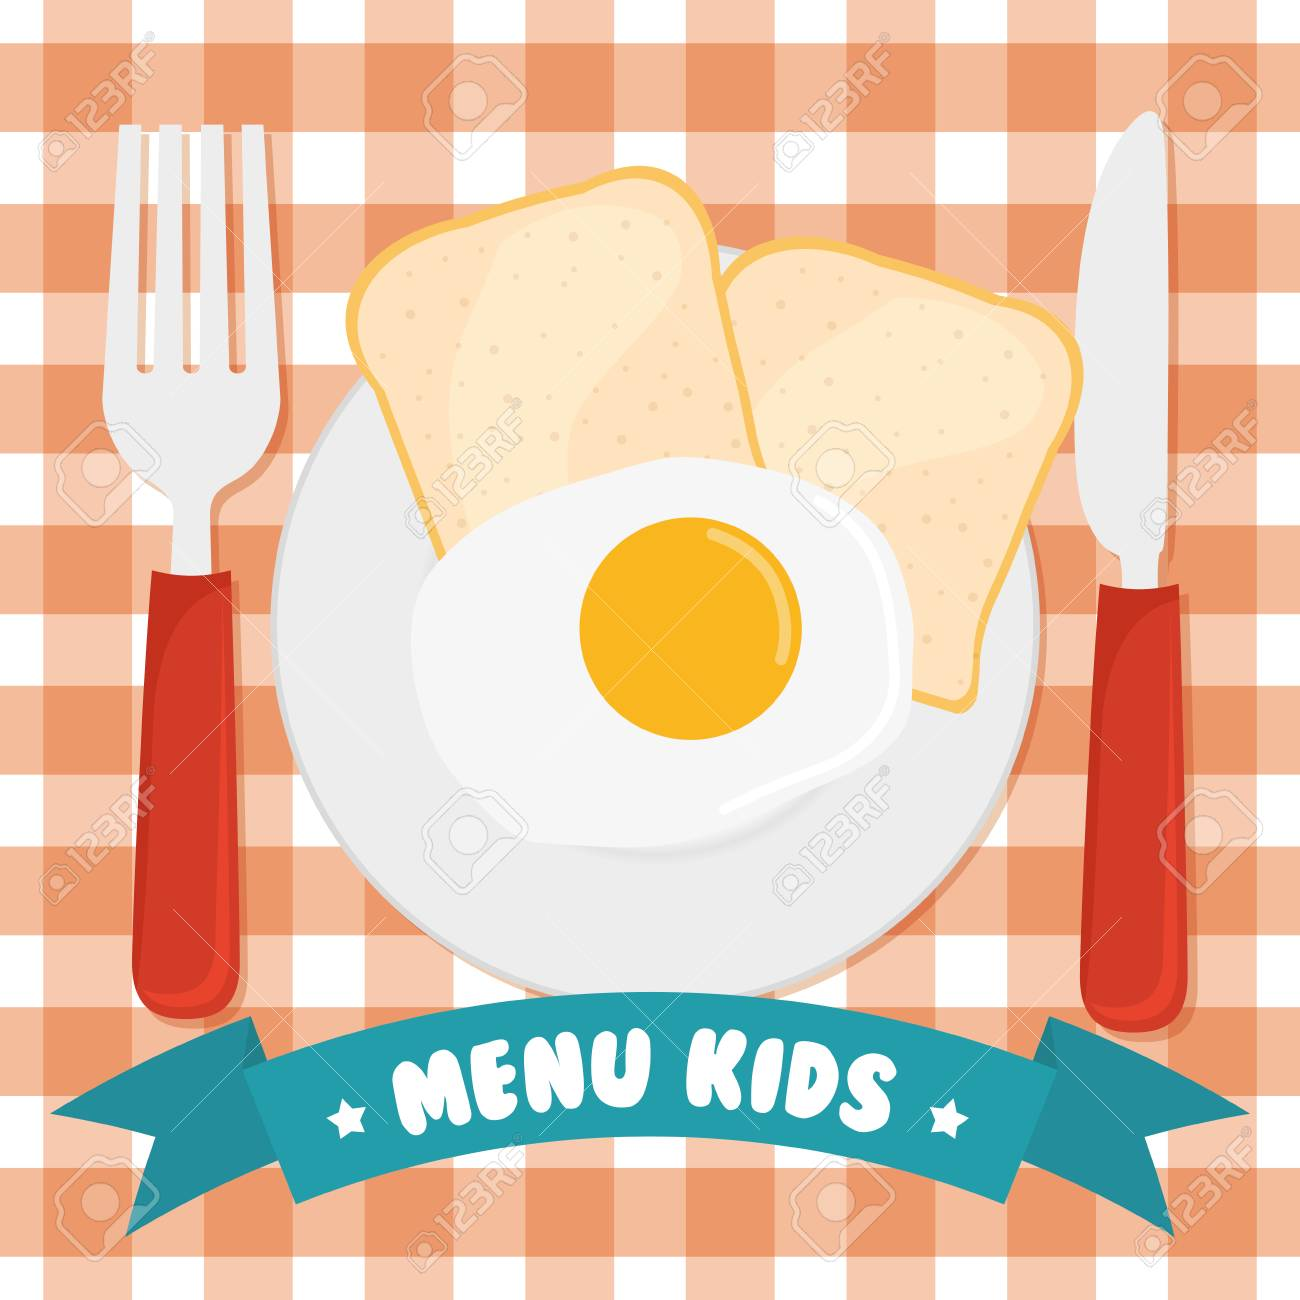 Kids Menu Design Over Red Background Vector Illustration Royalty Free Cliparts Vectors And Stock Illustration Image 58660620